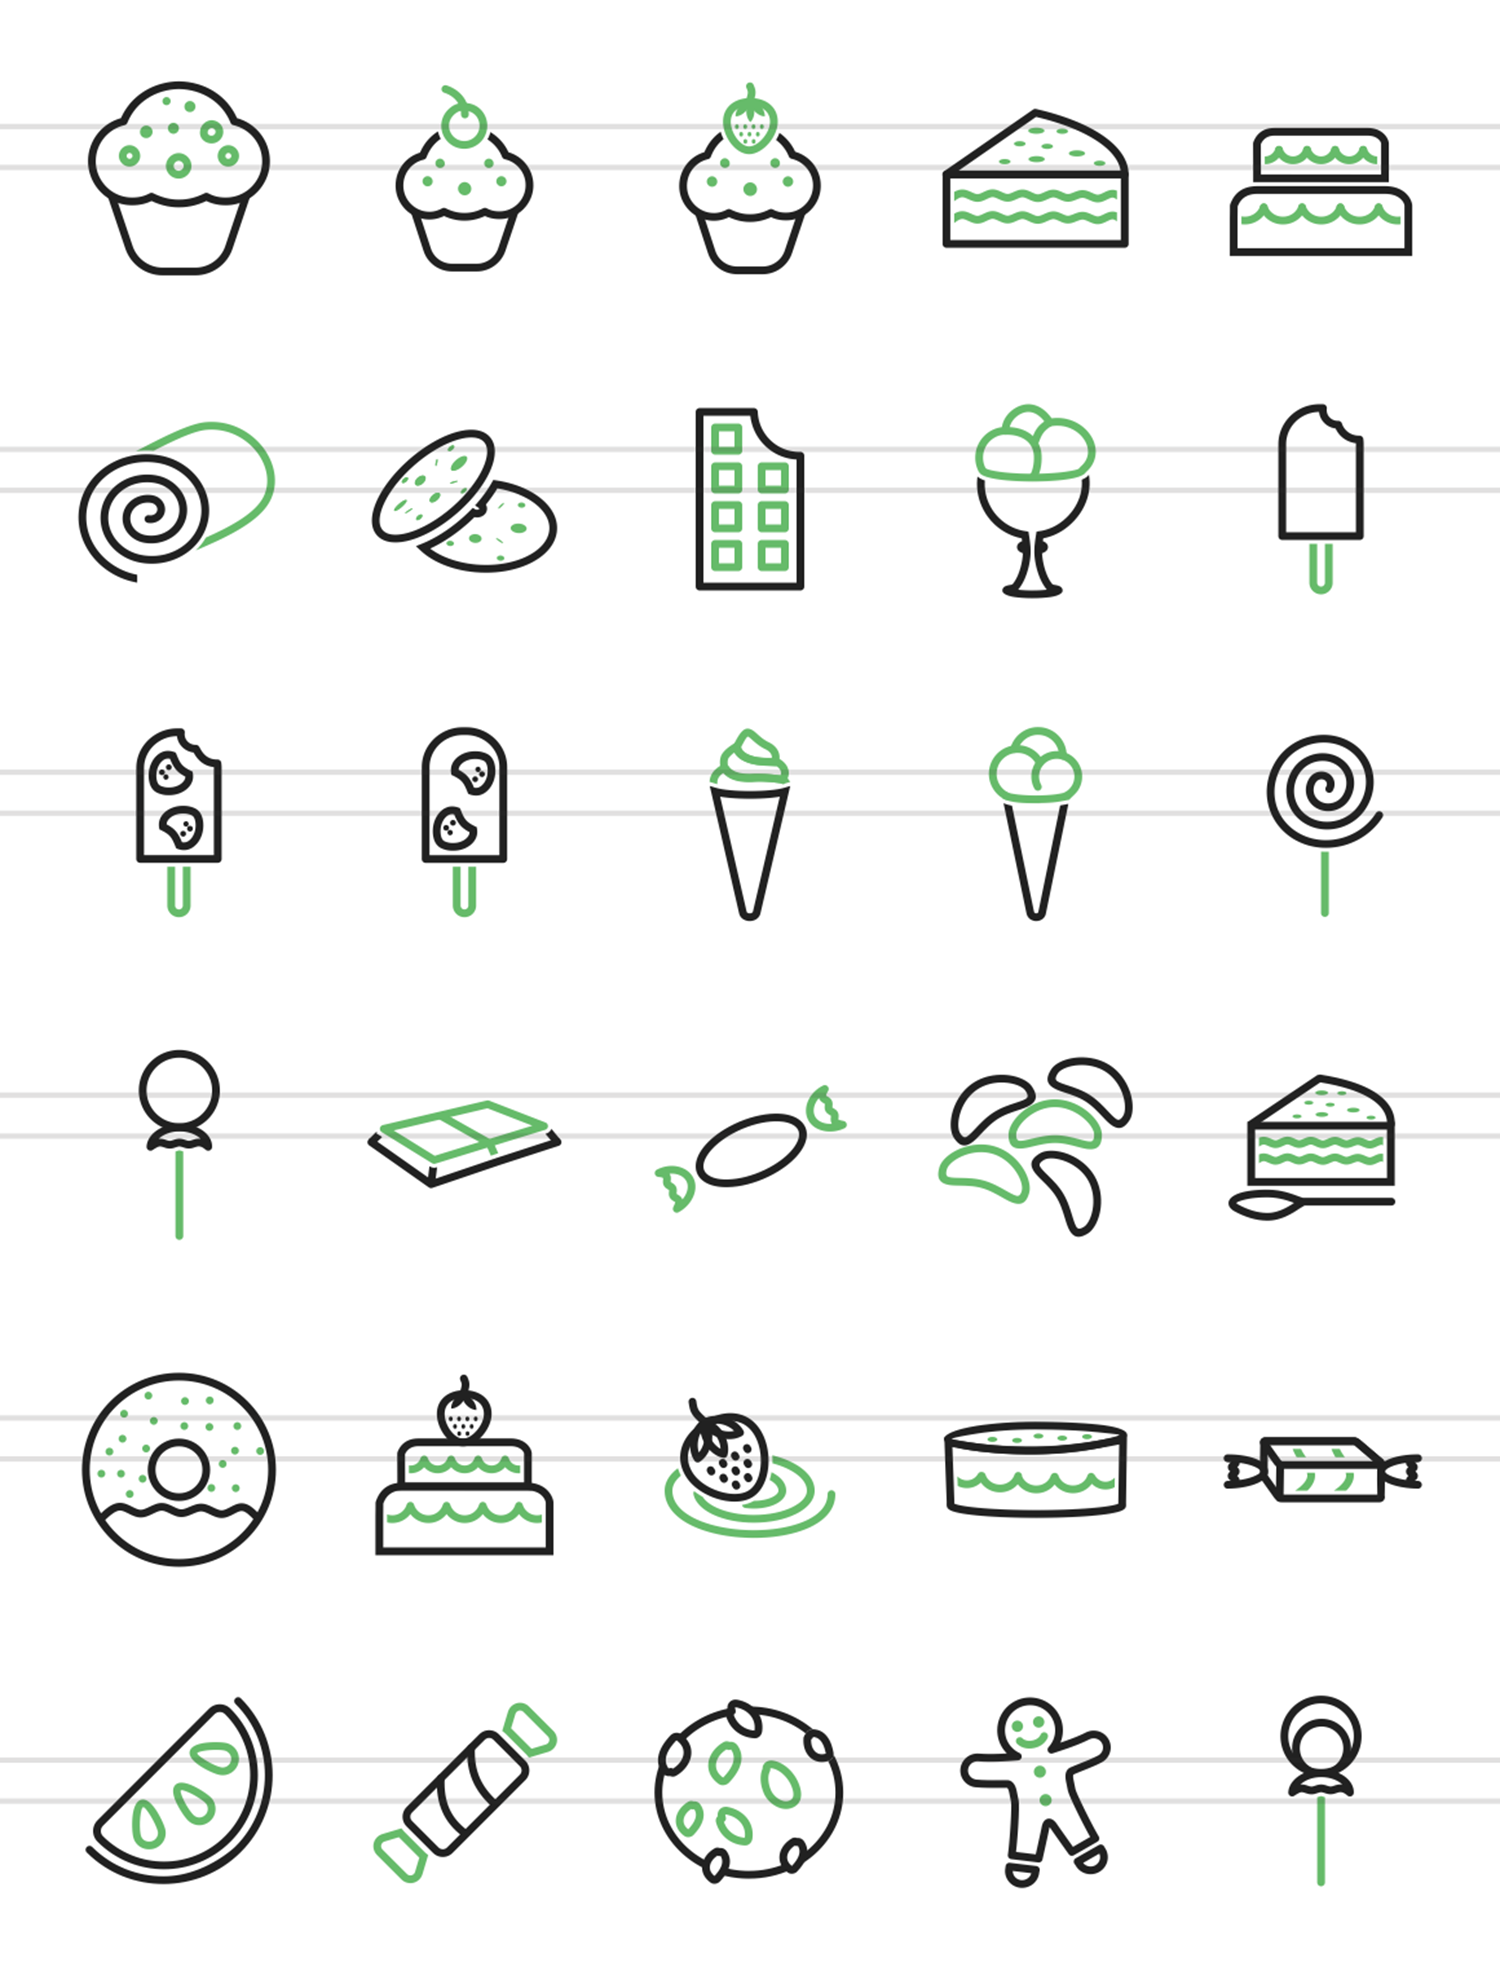 30 Sweets & Confectionery Line Green & Black Icons example image 2